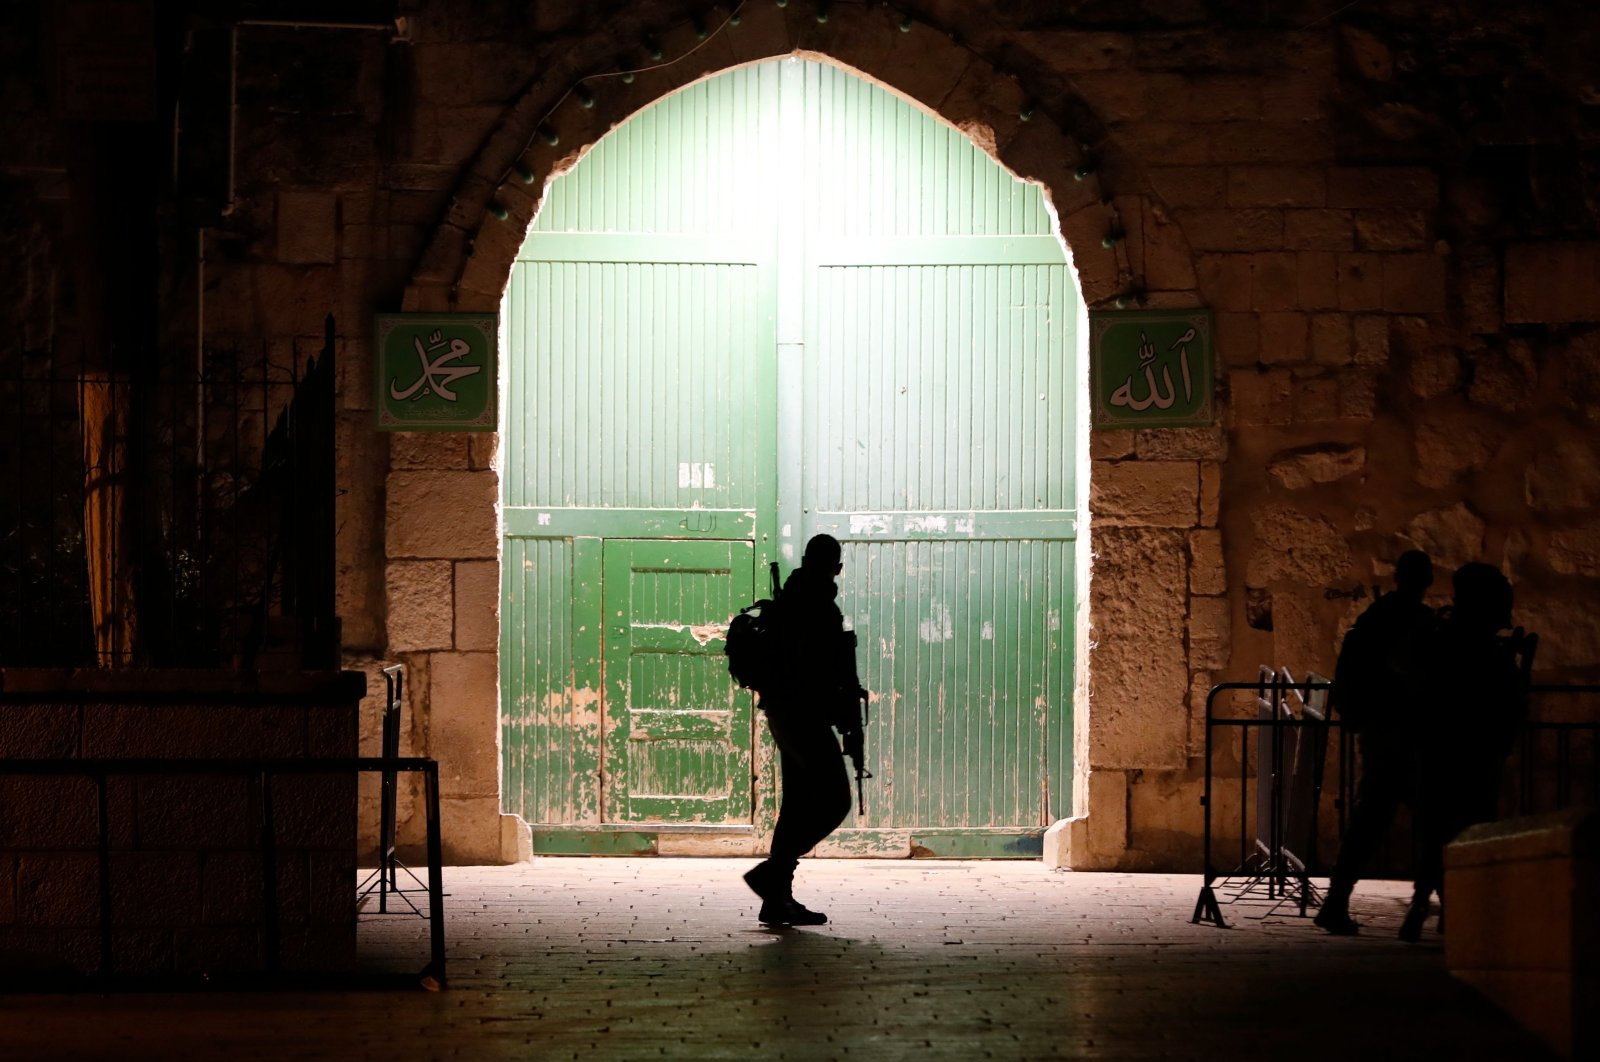 Israeli soldier during a patrol at an entrance to the al-Aqsa compound in Jerusalem's Old City, Feb. 19, 2019. (AFP Photo)